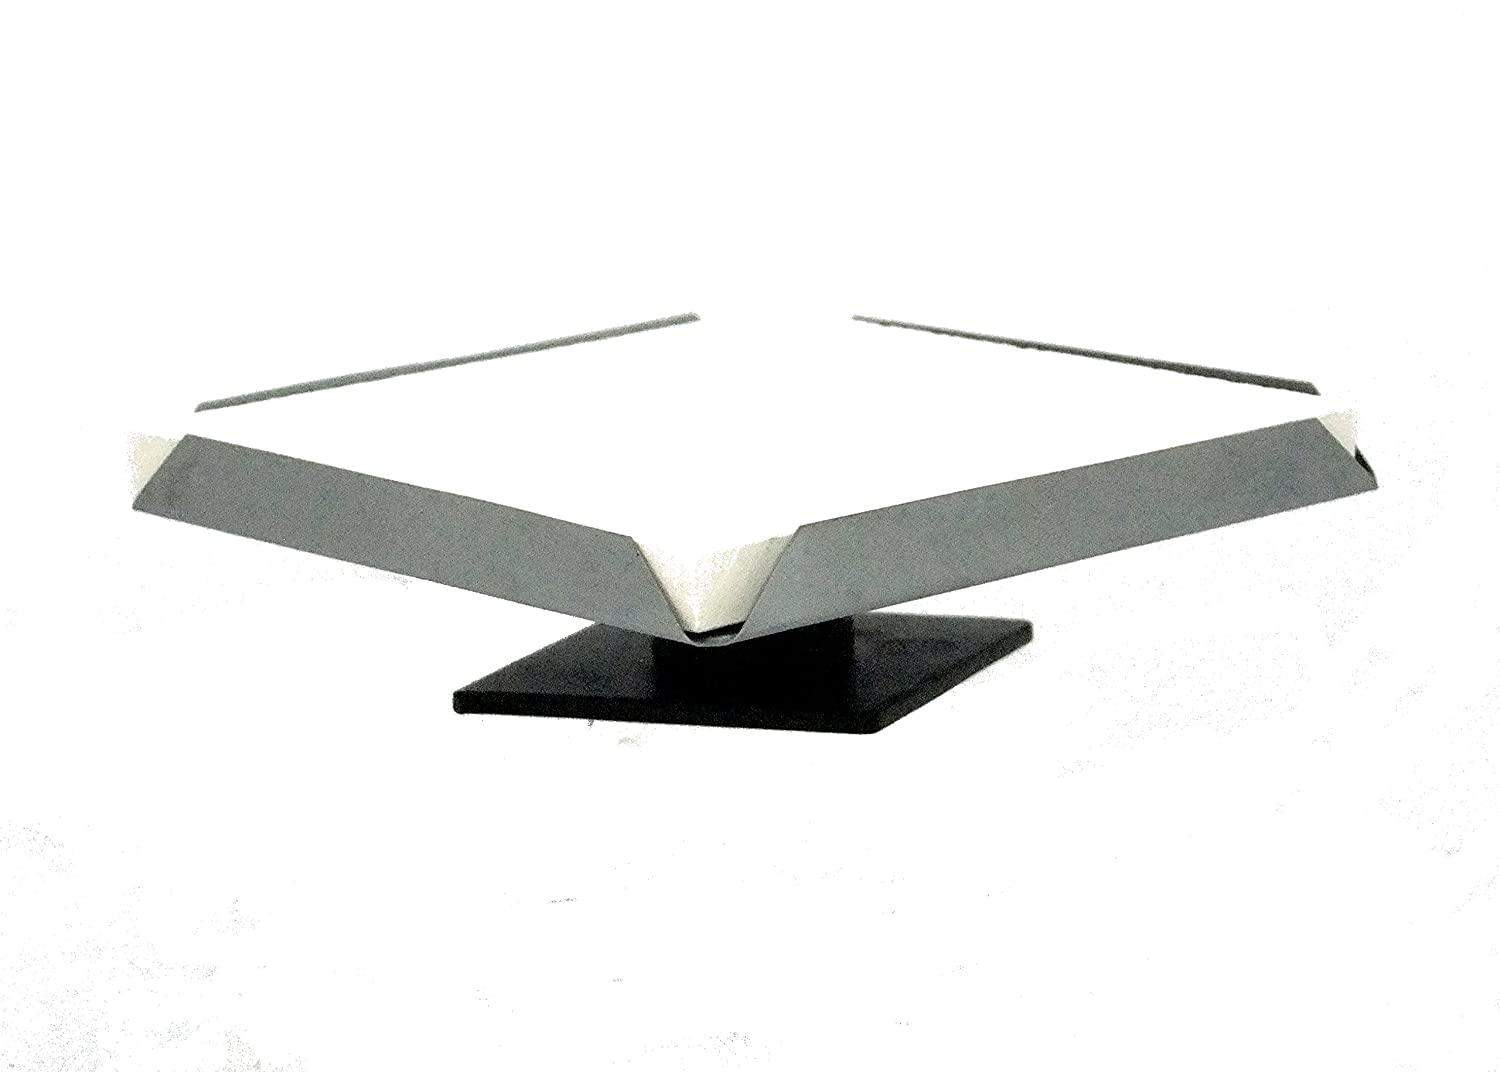 360 Degree Rotating Square Platform With 15cm x 15cm Solder Board   B077QWLWKN